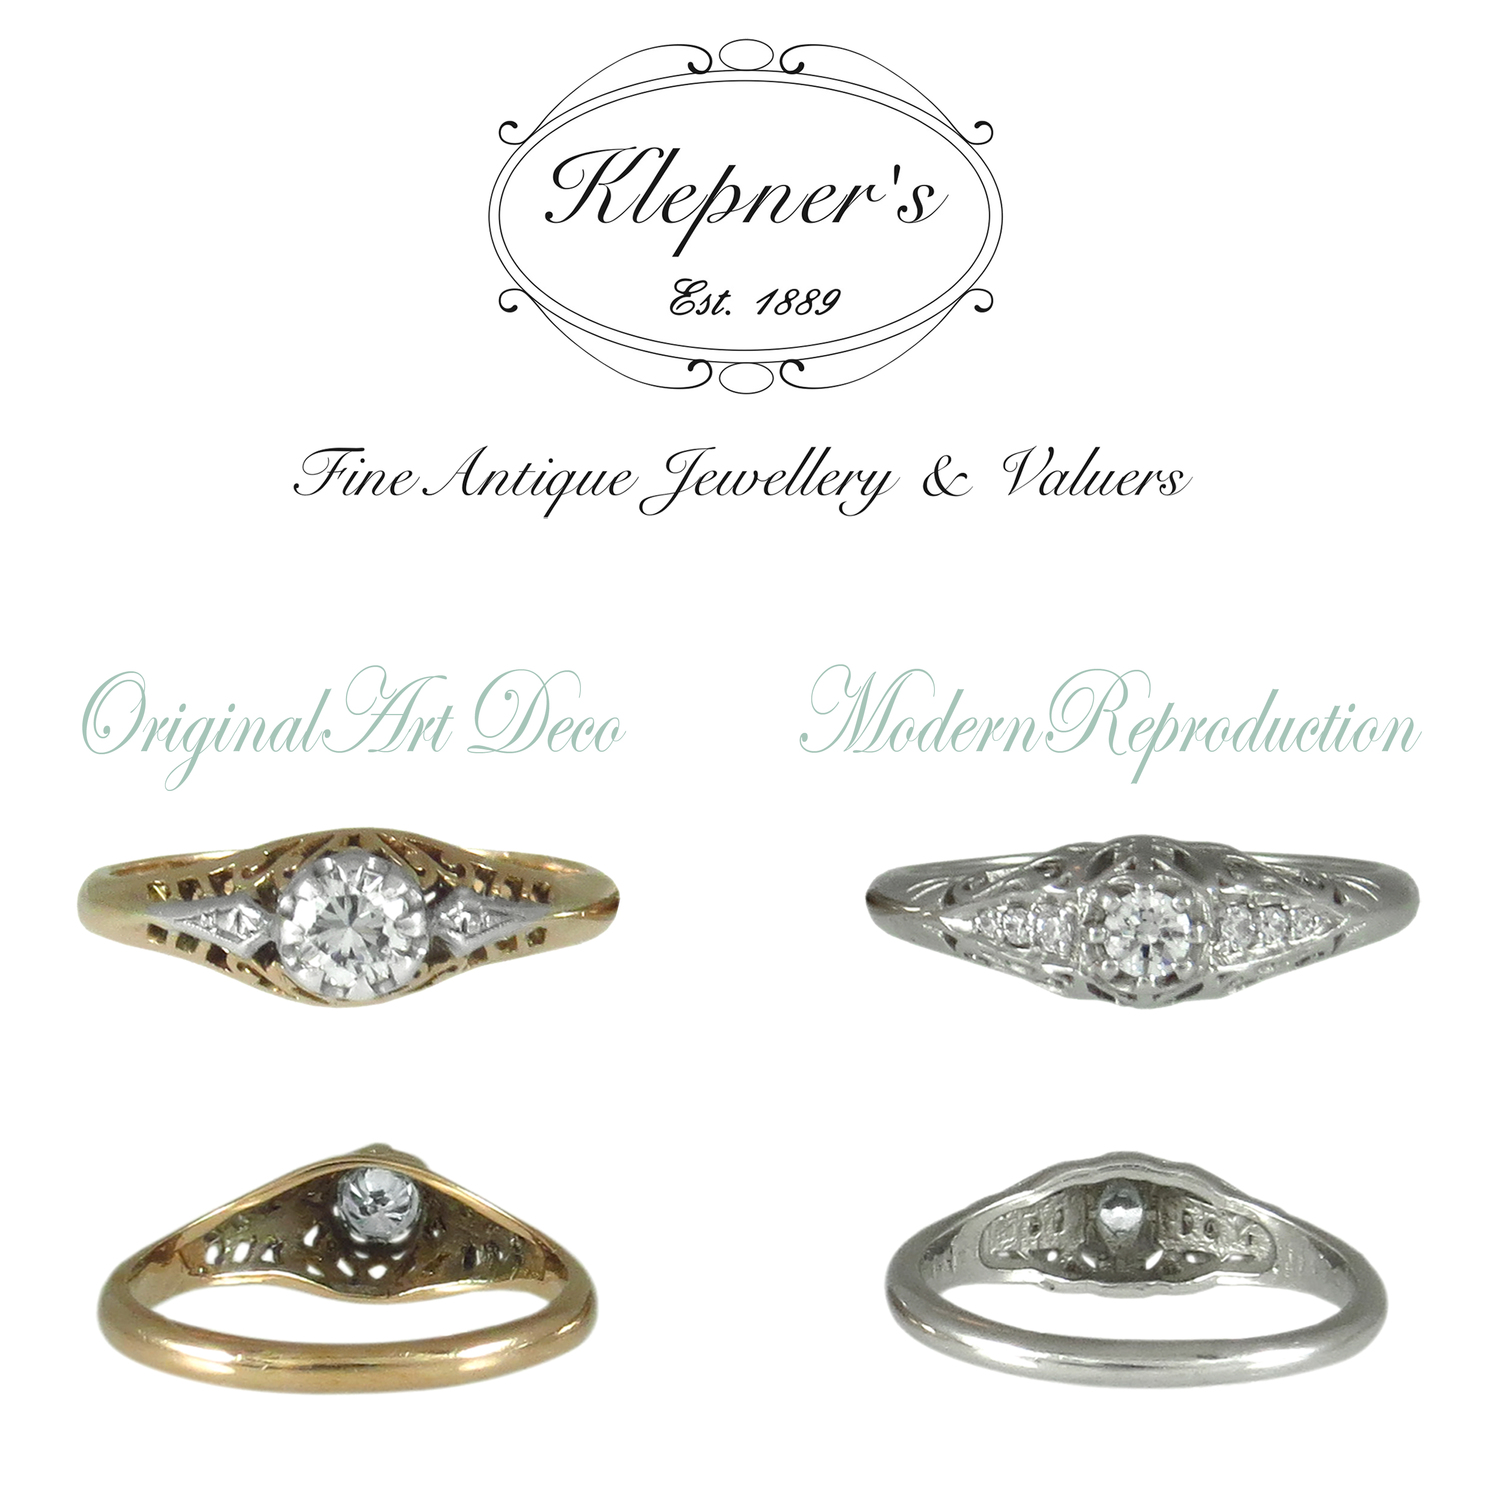 28e0cf2f1 REAL ANTIQUE RING OR REPRODUCTION; THE TOP 5 PRO TIPS TO HELP YOU TELL THE  DIFFERENCE — Klepner's Fine Antique Jewellery & Valuers- Antique Engagement  Rings